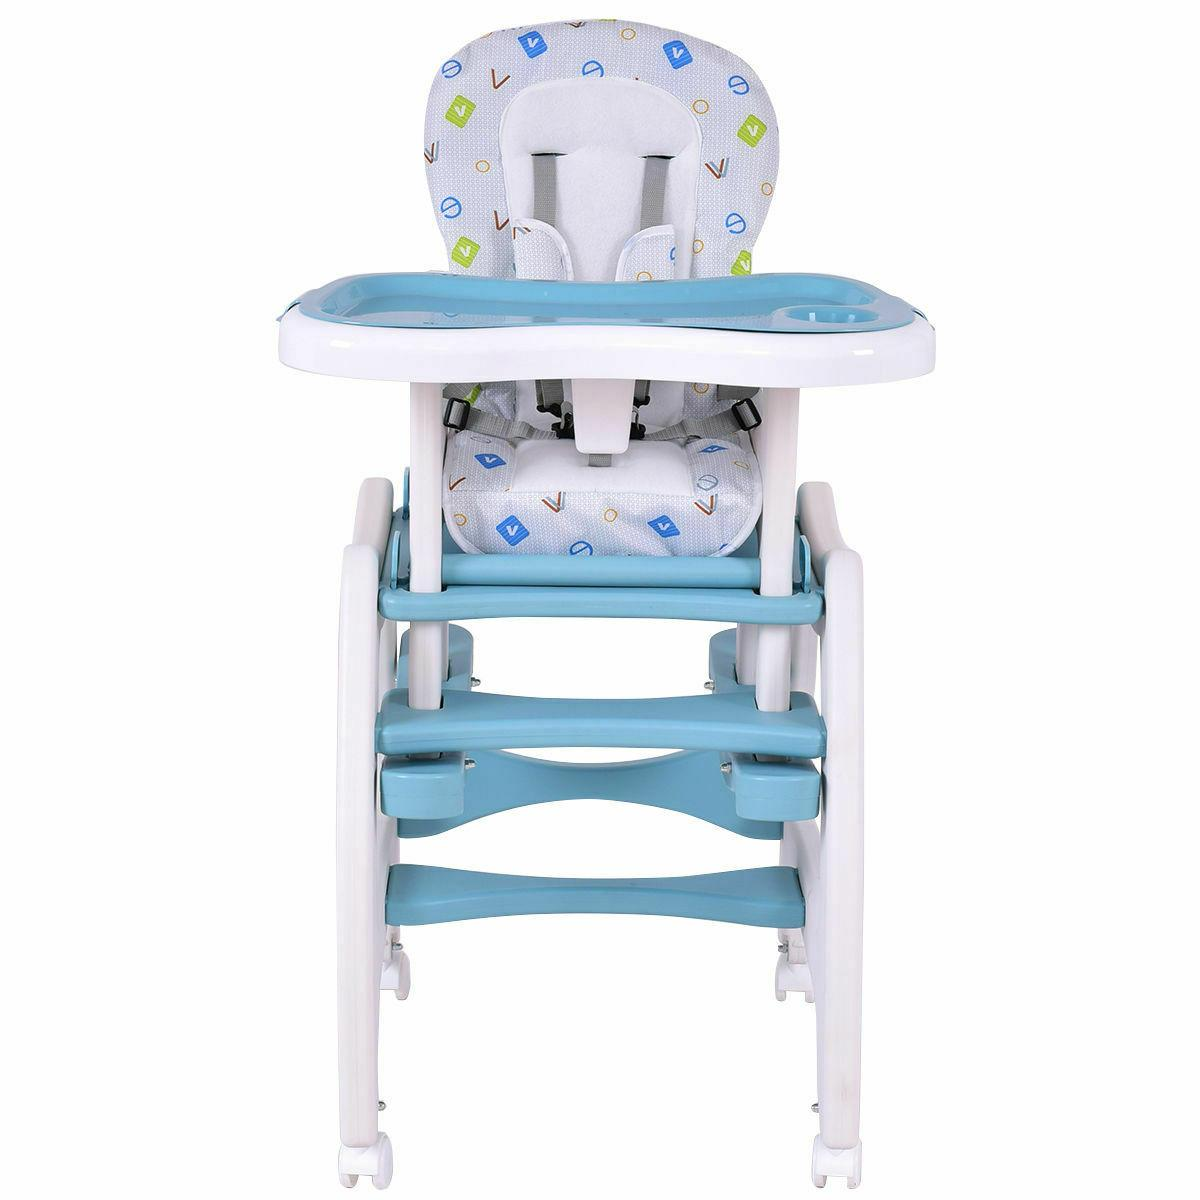 High 1 Baby Table Booster Toddler Pink/Blue